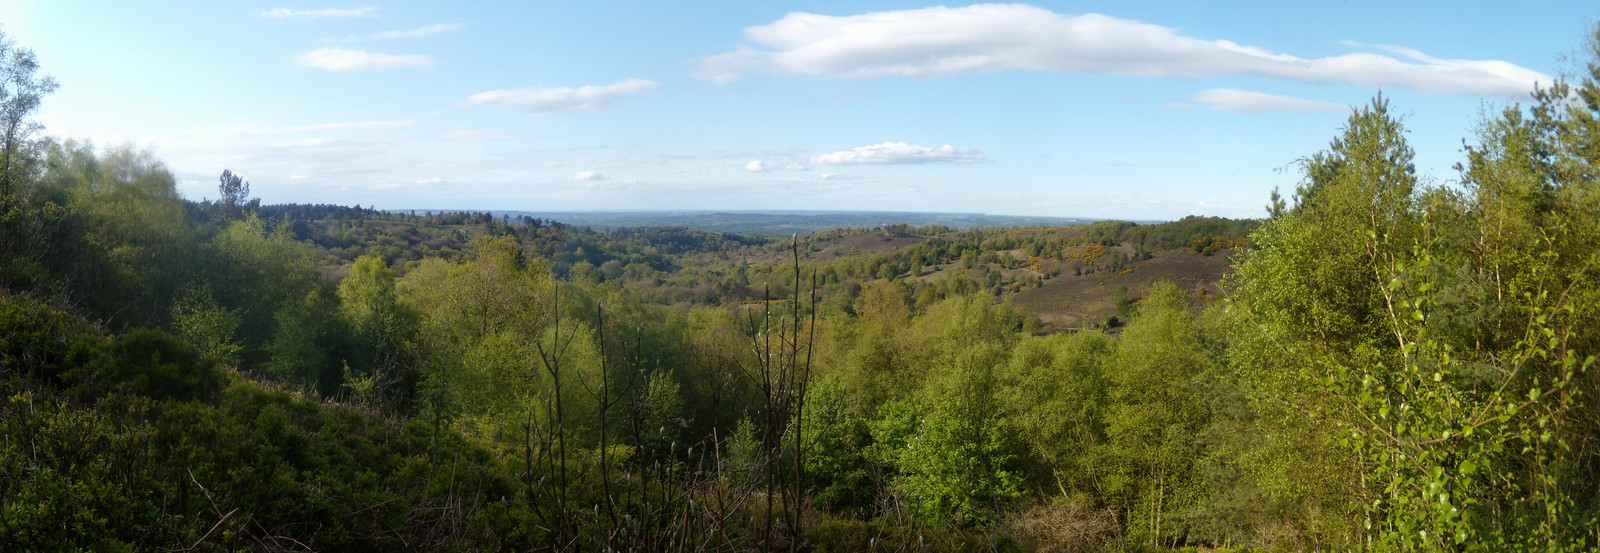 View Milford to Haslemere